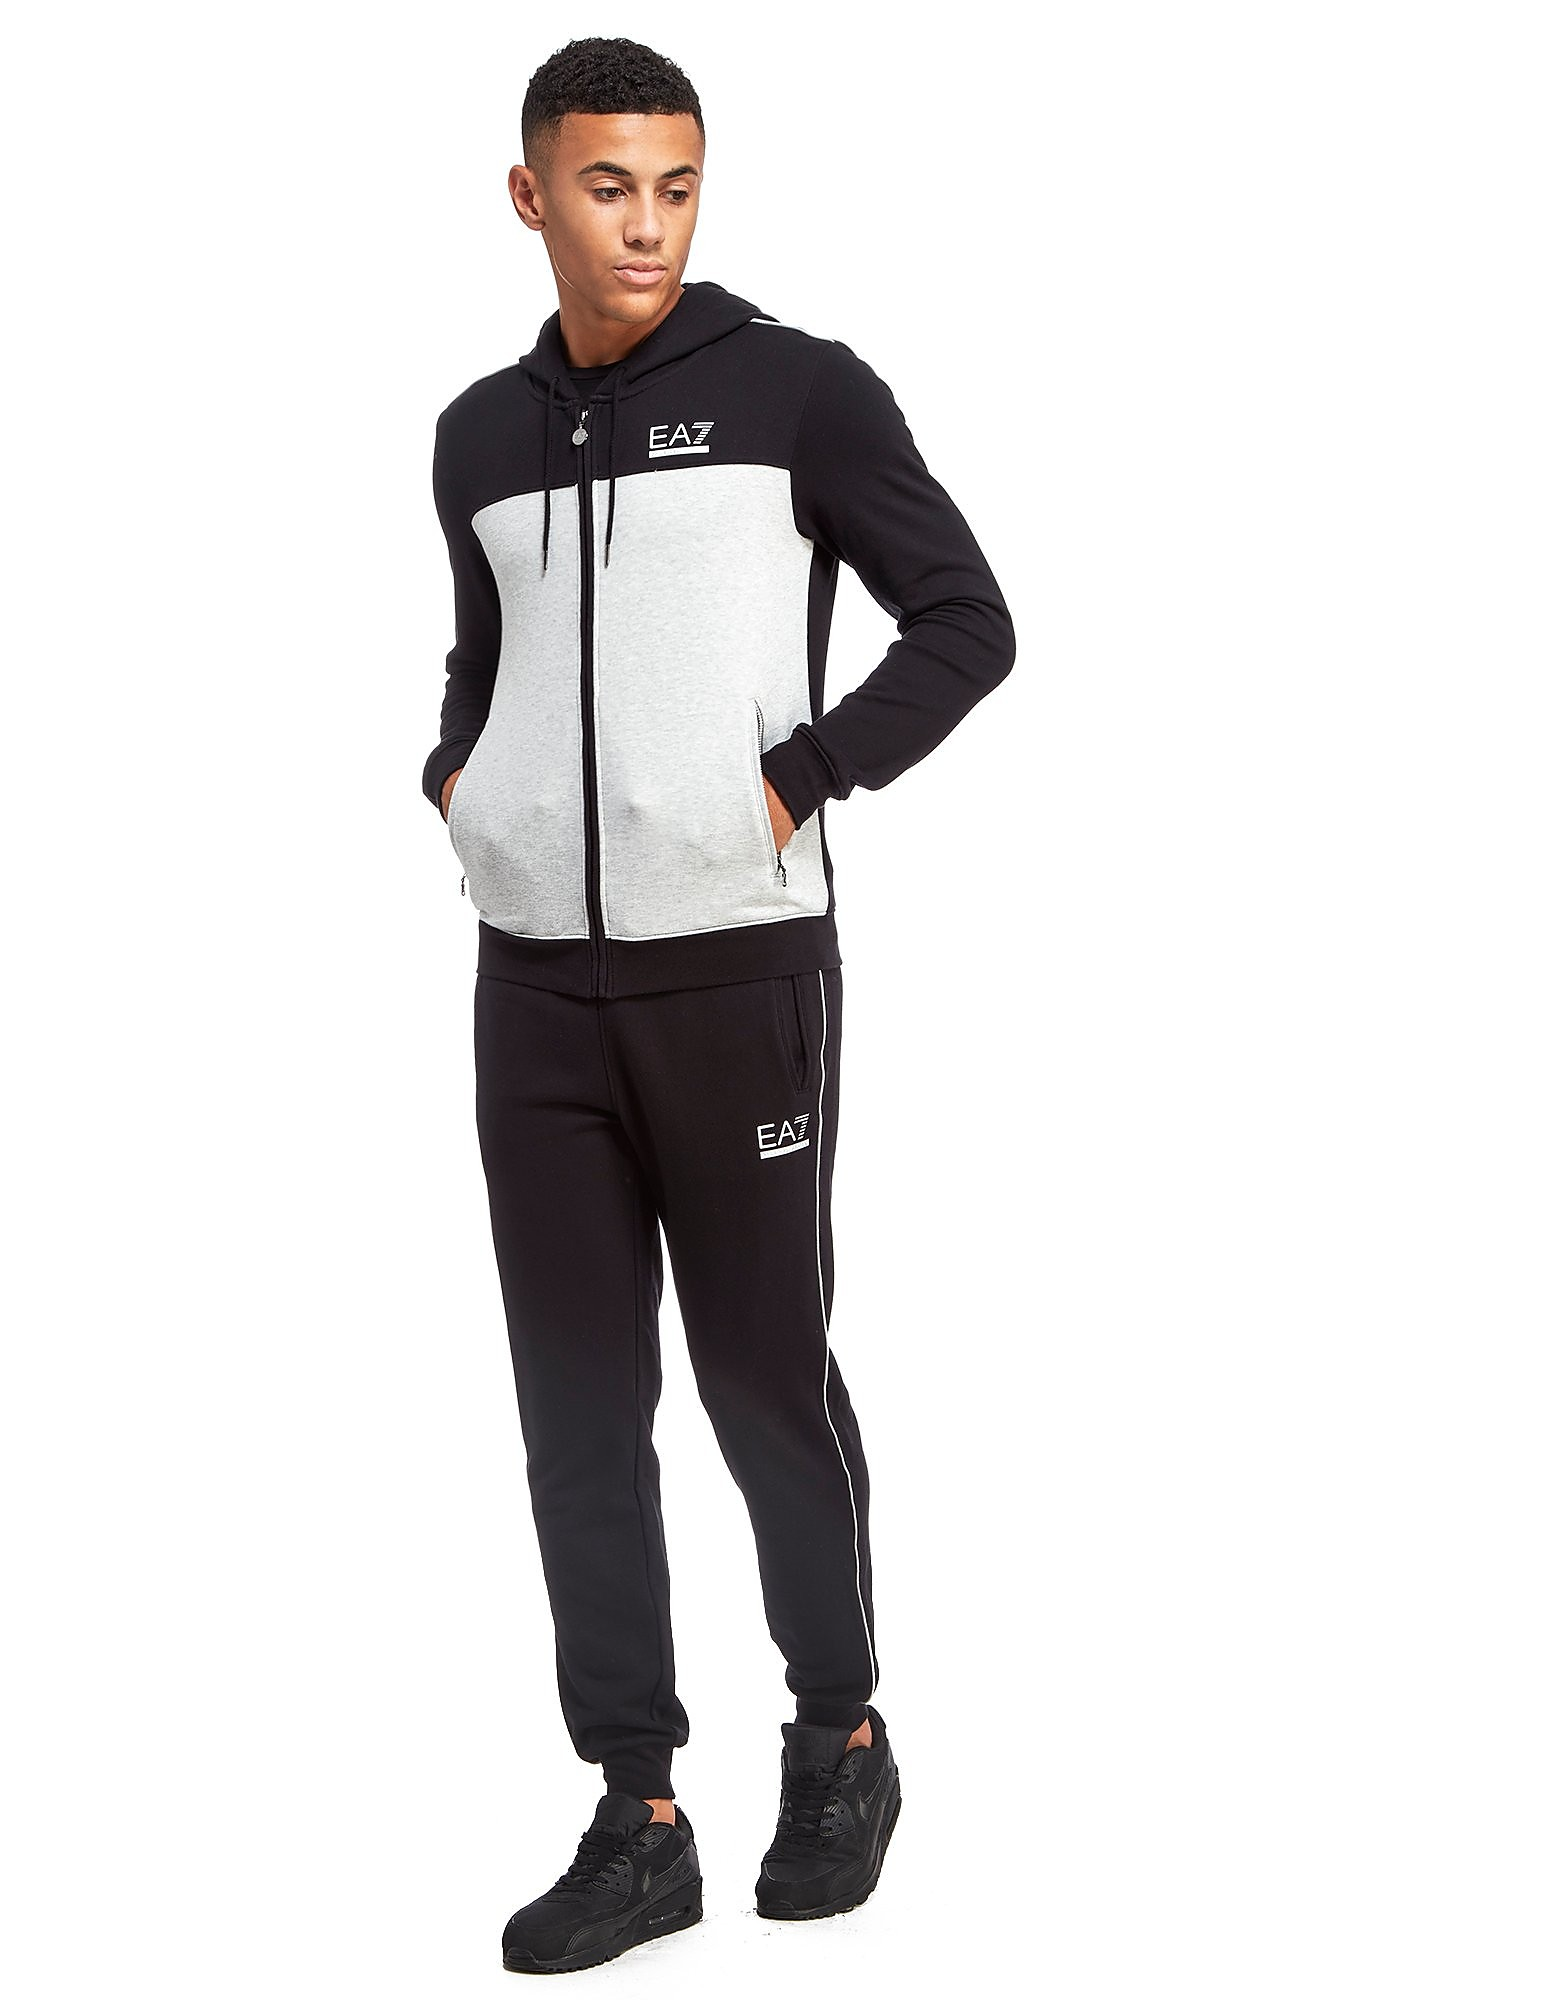 Emporio Armani EA7 Panel Colour Block Tracksuit